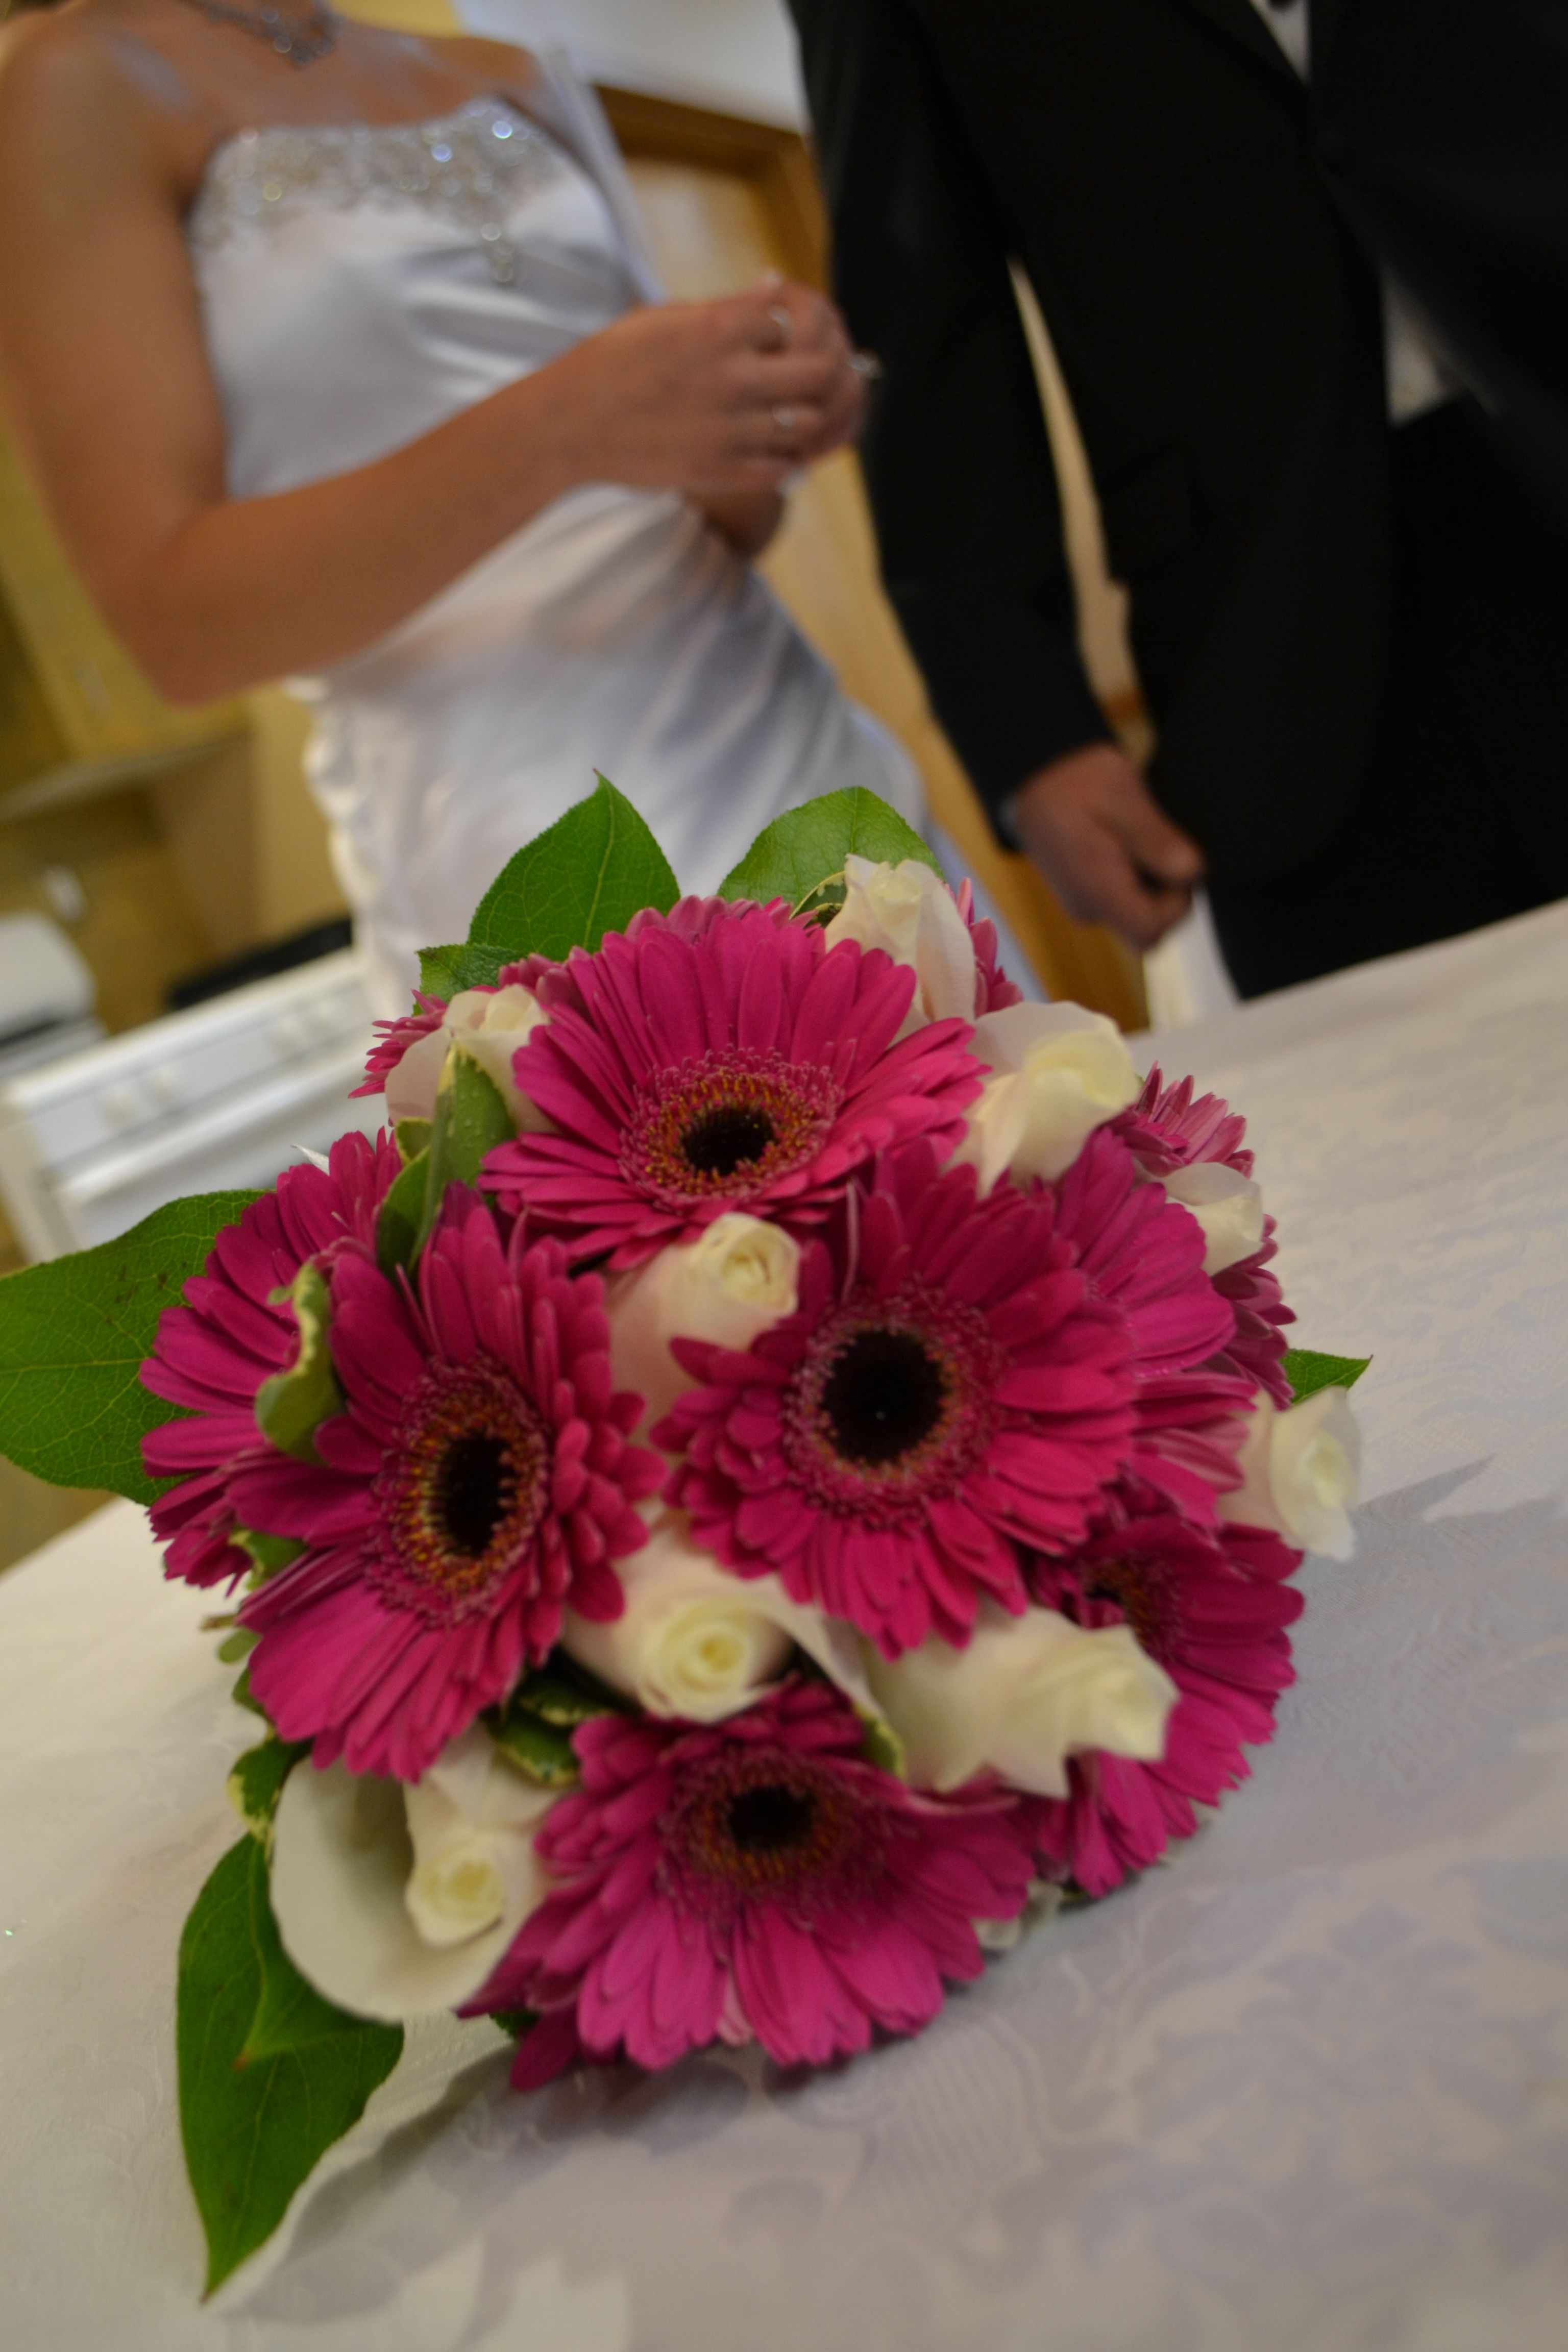 Hochzeit Farben My Wedding Bouquet Hot Pink Gerbera Daisies And White